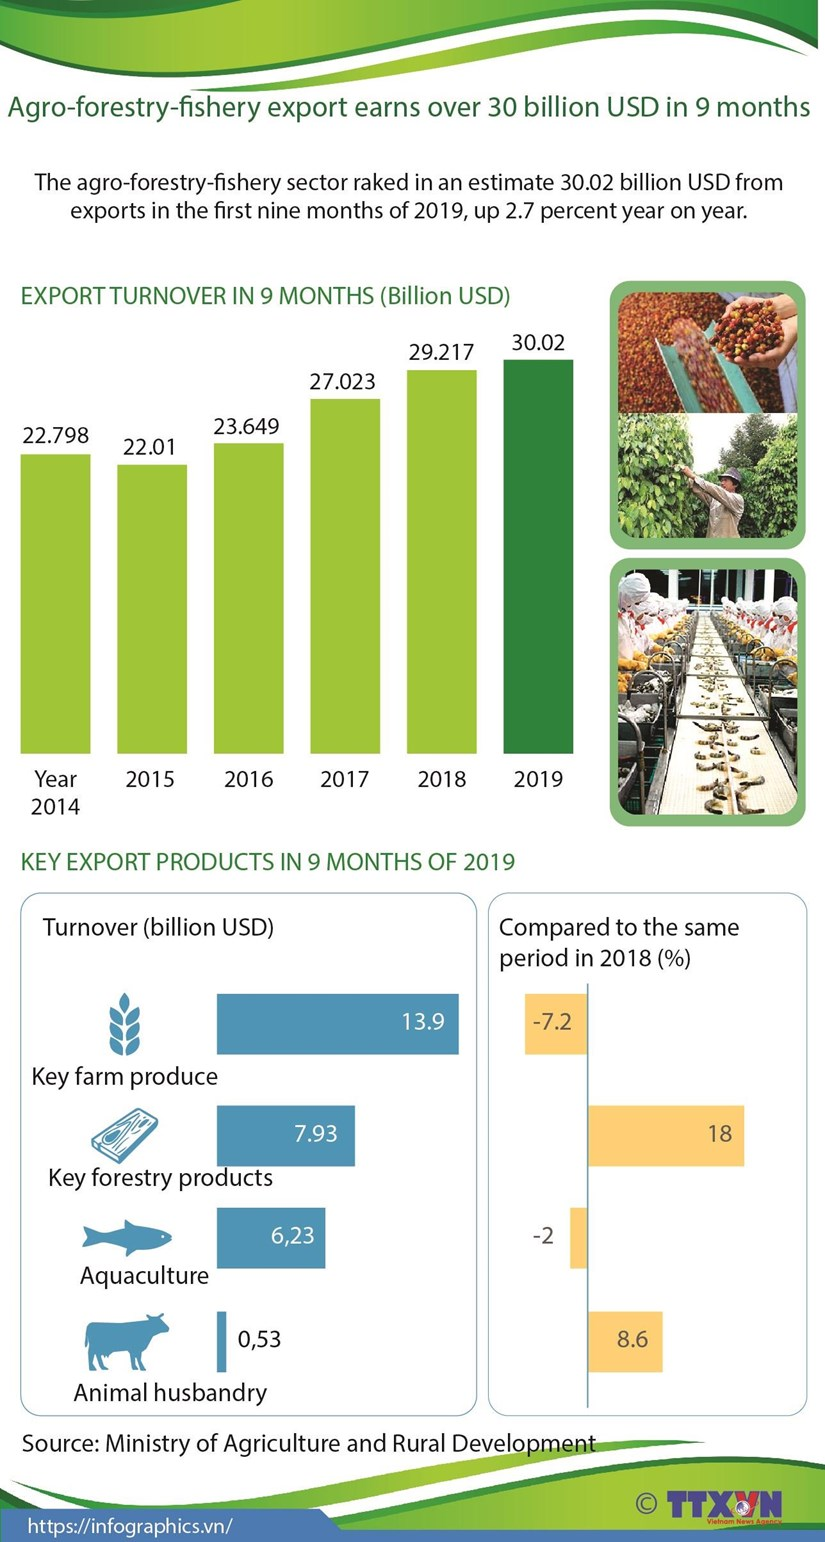 Agro-forestry-fishery export earns over 30 billion USD in 9 months hinh anh 1